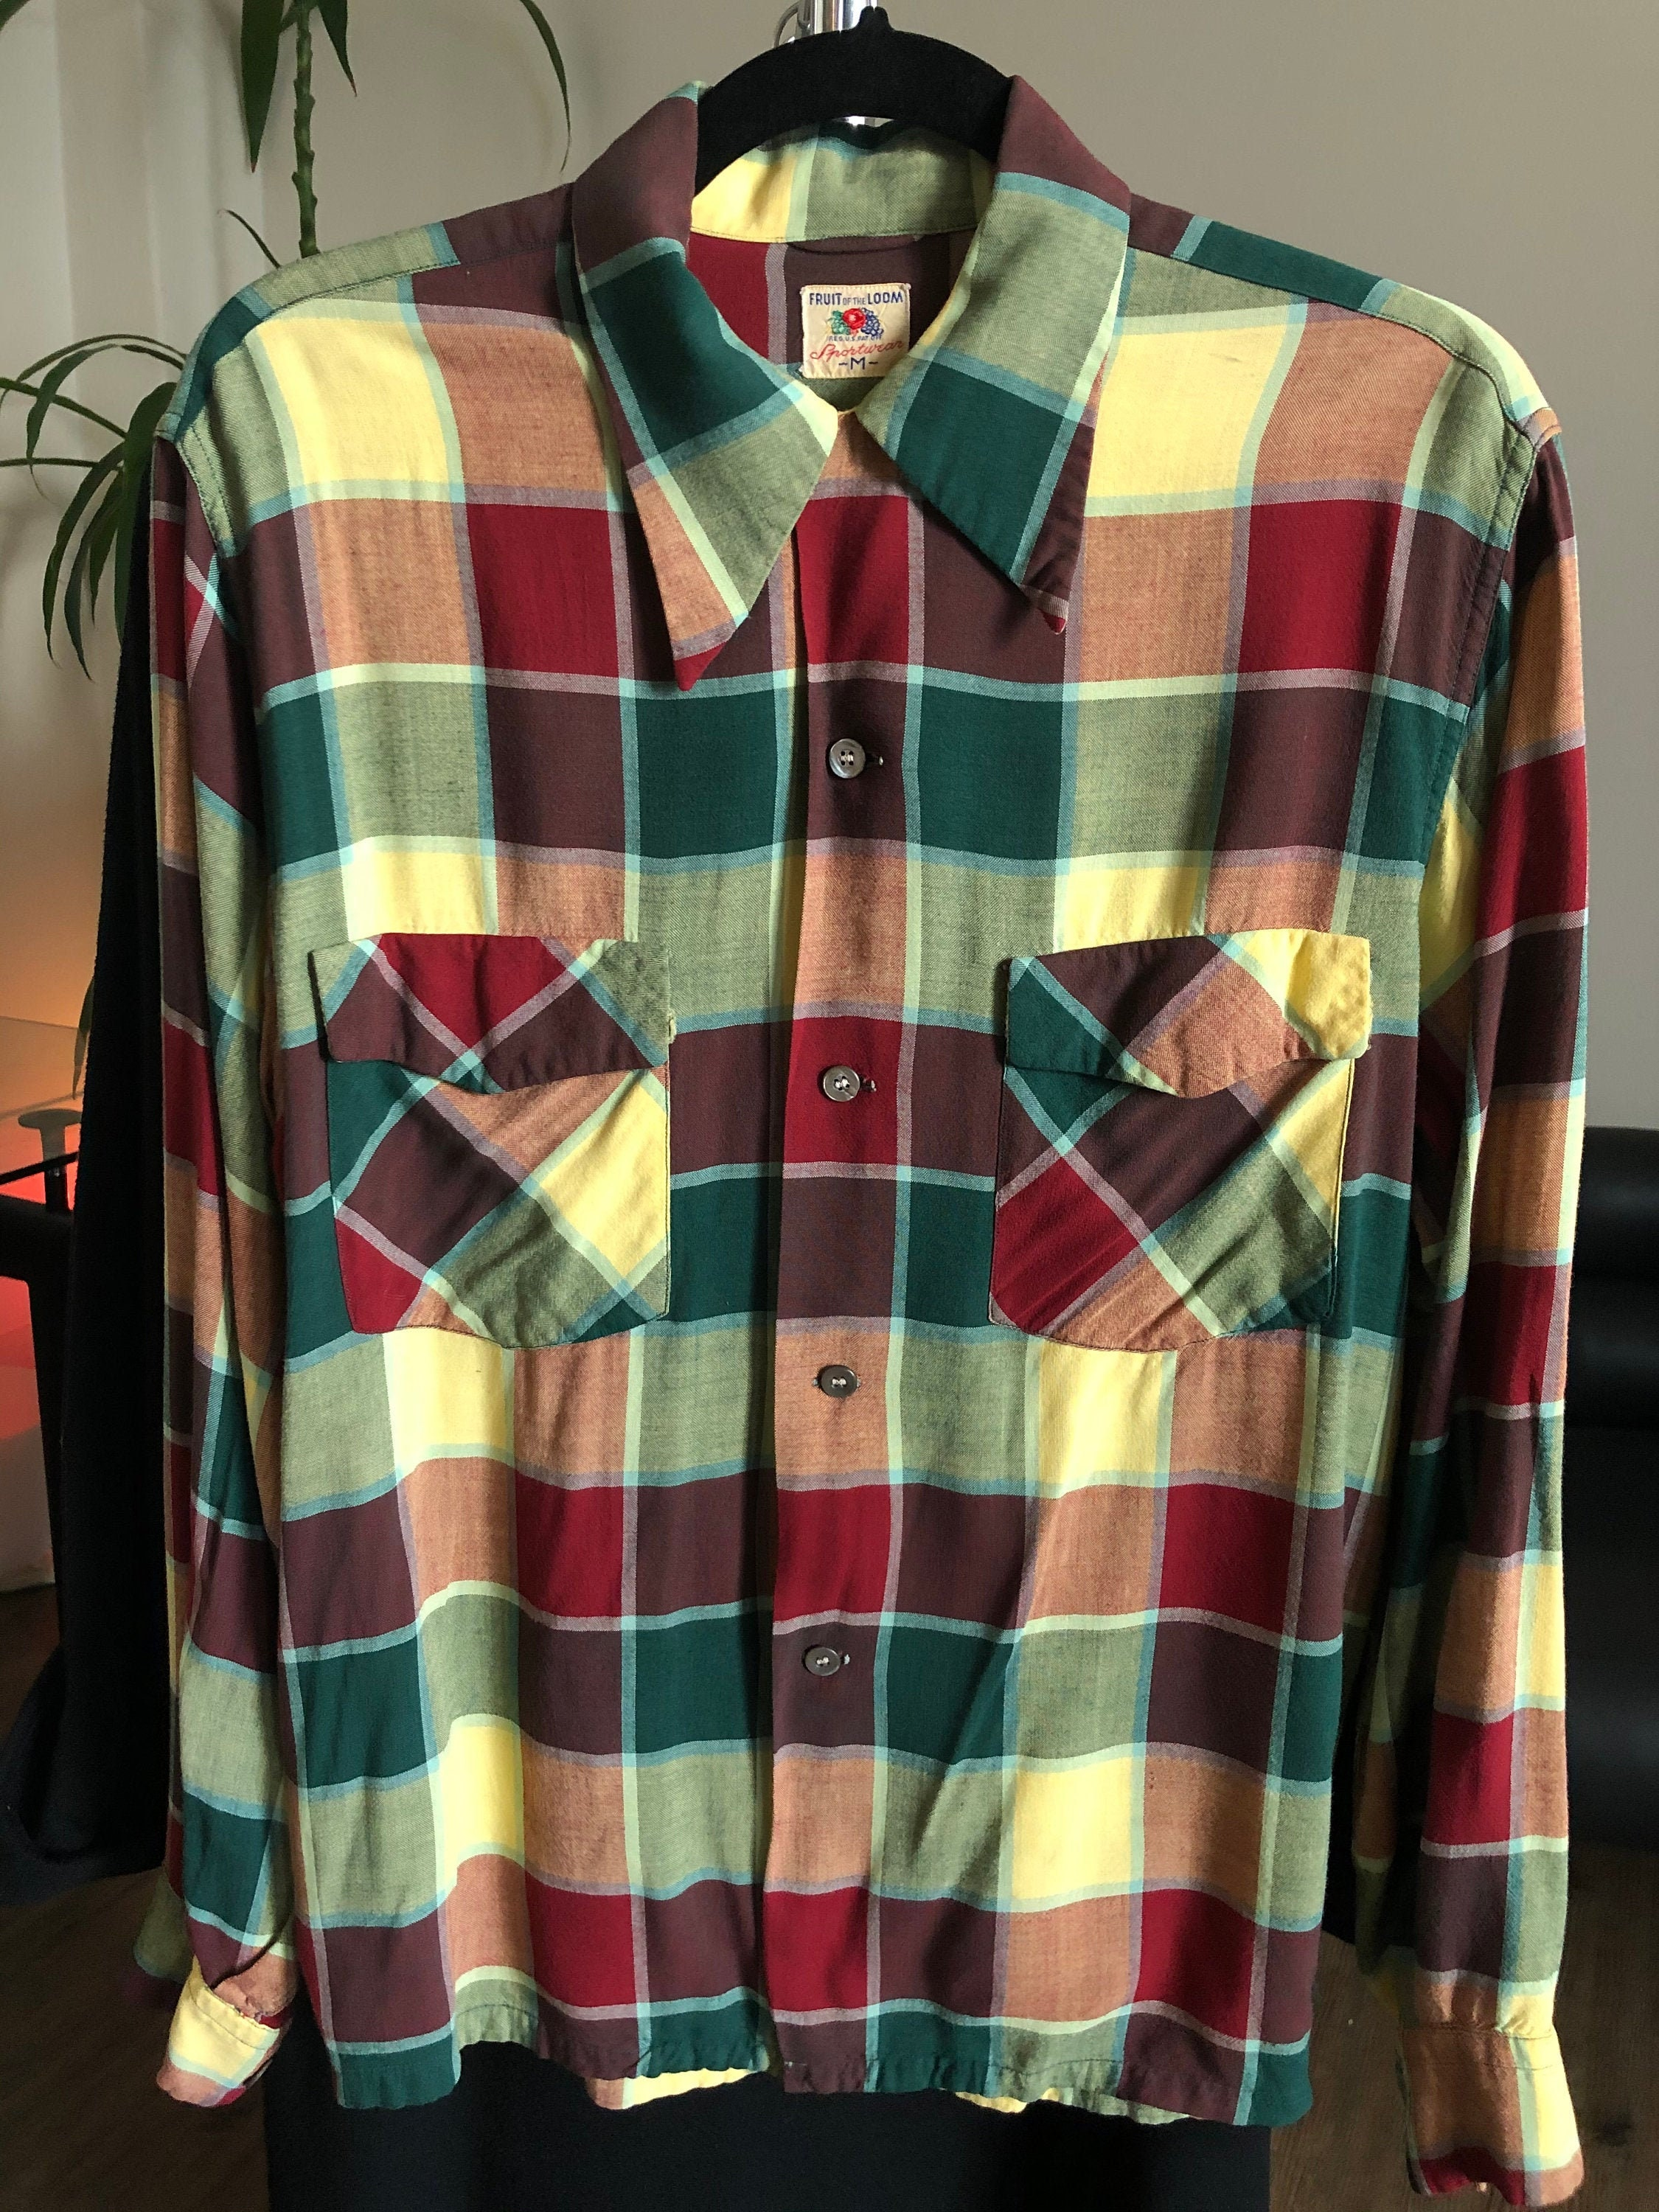 1940s Mens Ties | Wide Ties & Painted Ties Vintage 1940s Fruit Of The Loom Sportswear Colorful Checker Button Up Long Sleeve Shirt $0.00 AT vintagedancer.com